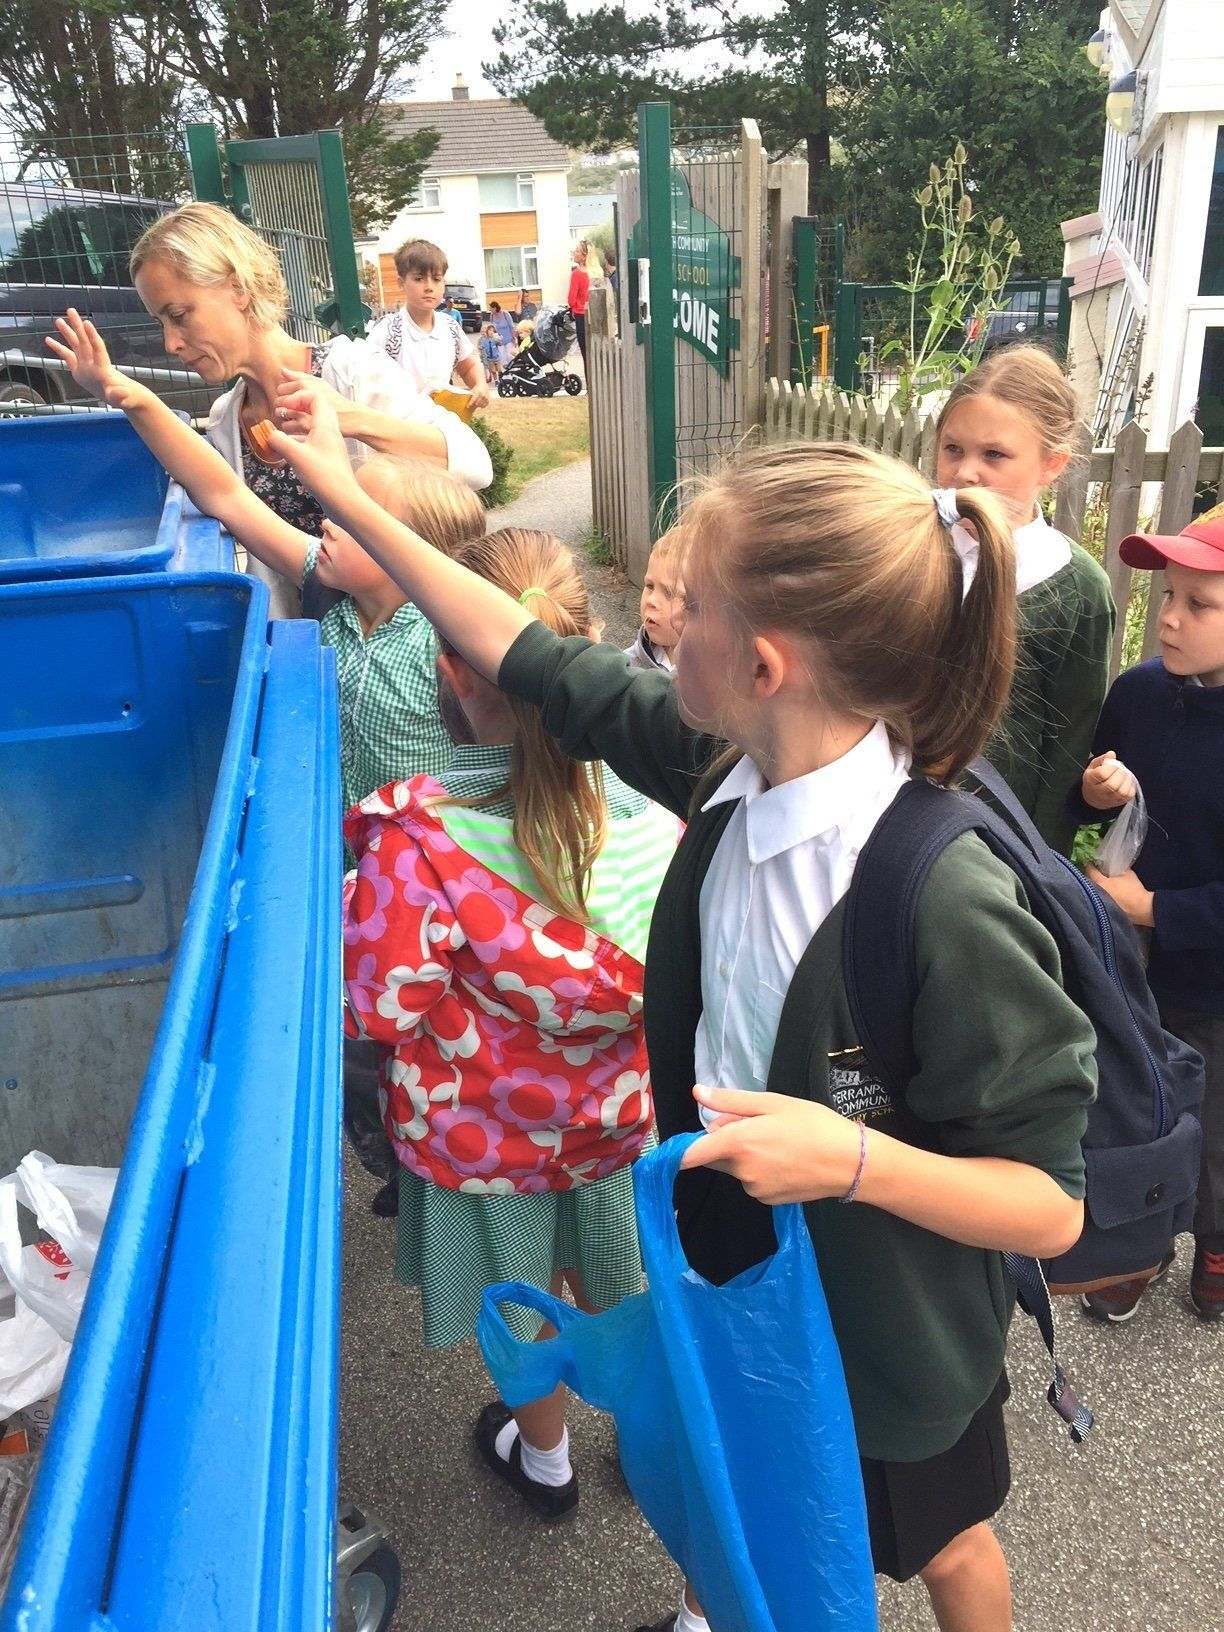 FUTURE ECO WARRIORS: These Kids Picked Up 173 Bags Of Litter On Two School